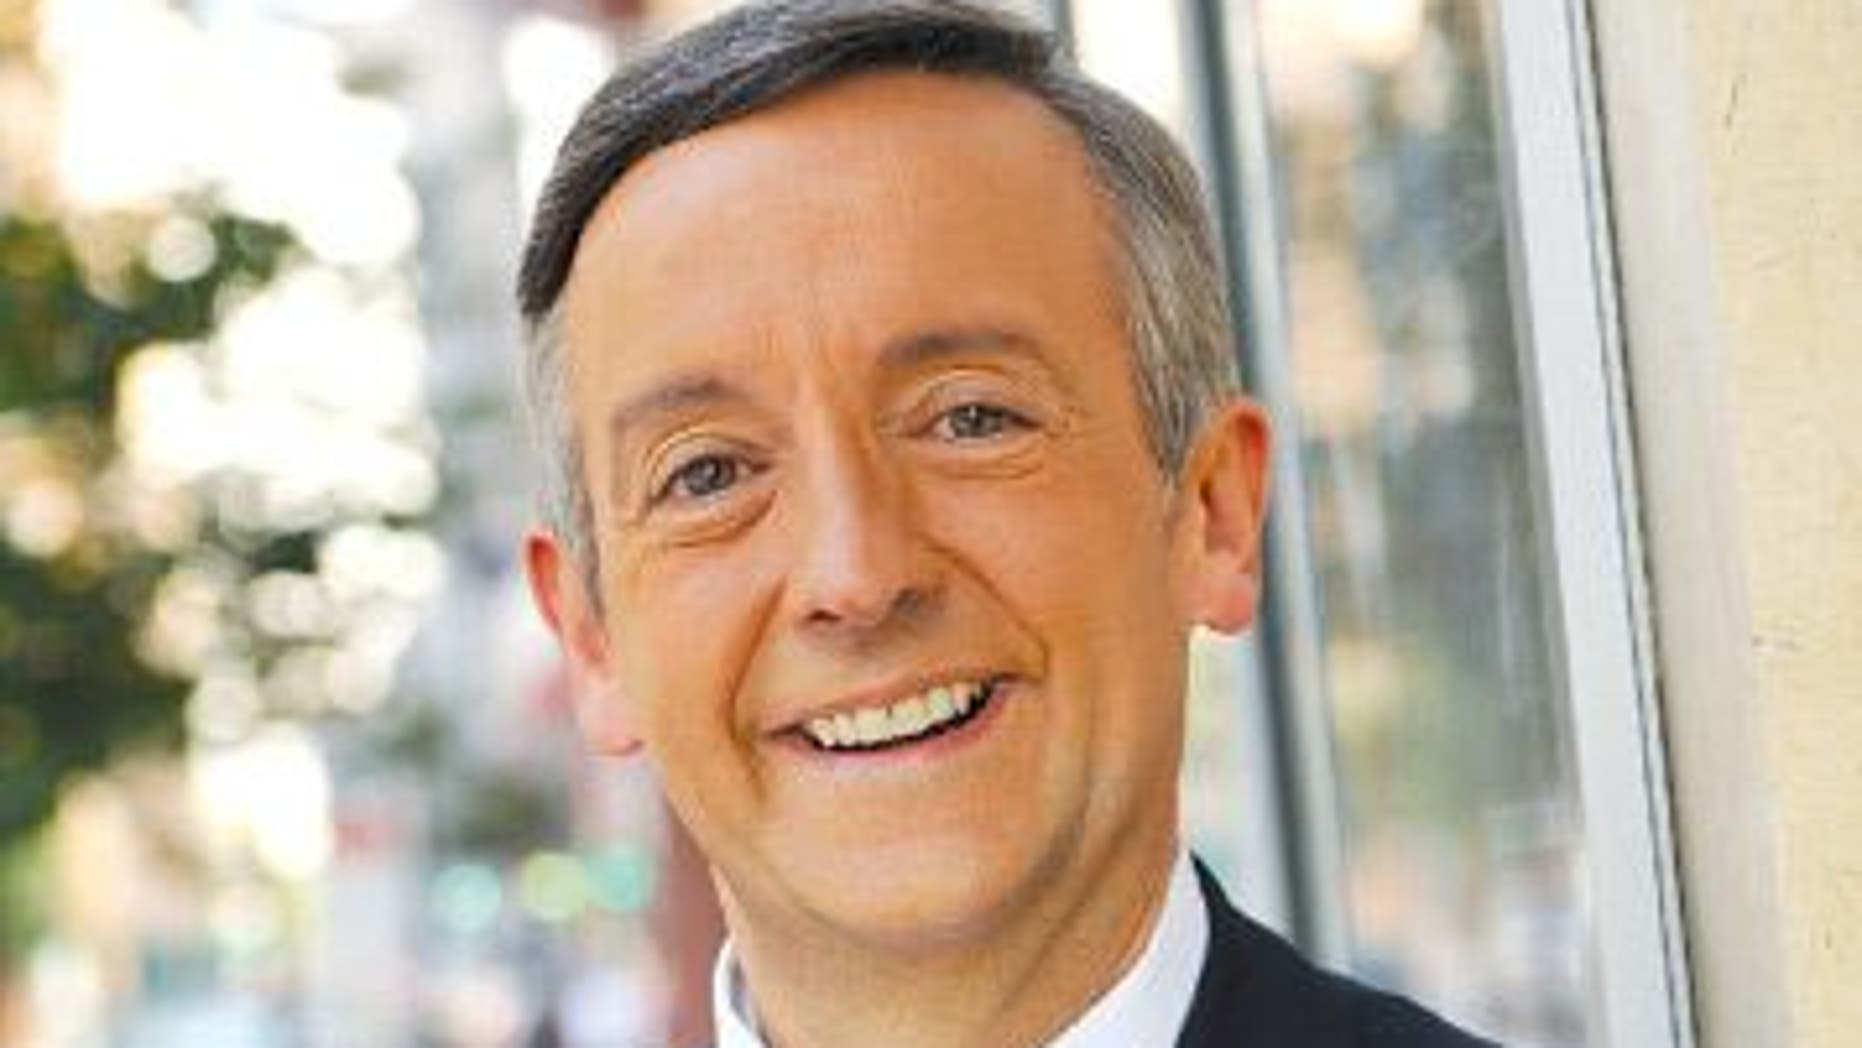 Dr. Robert Jeffress is pastor of the First Baptist Church of Dallas.